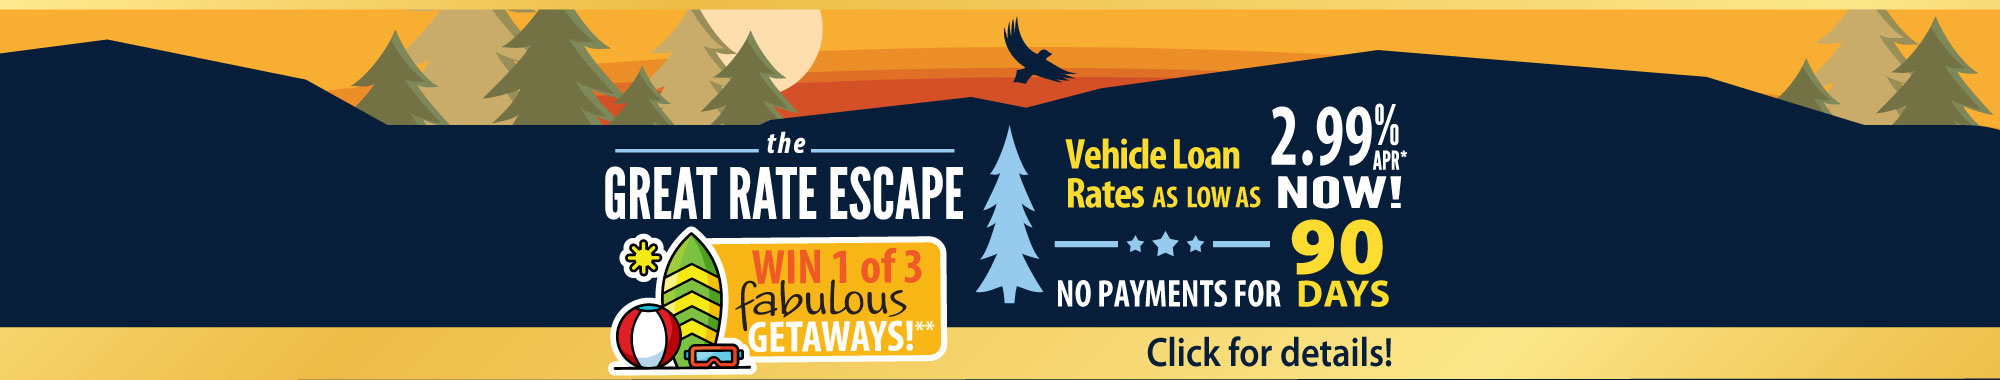 Make a break for our Great Rate Escape vehicle loan sale!